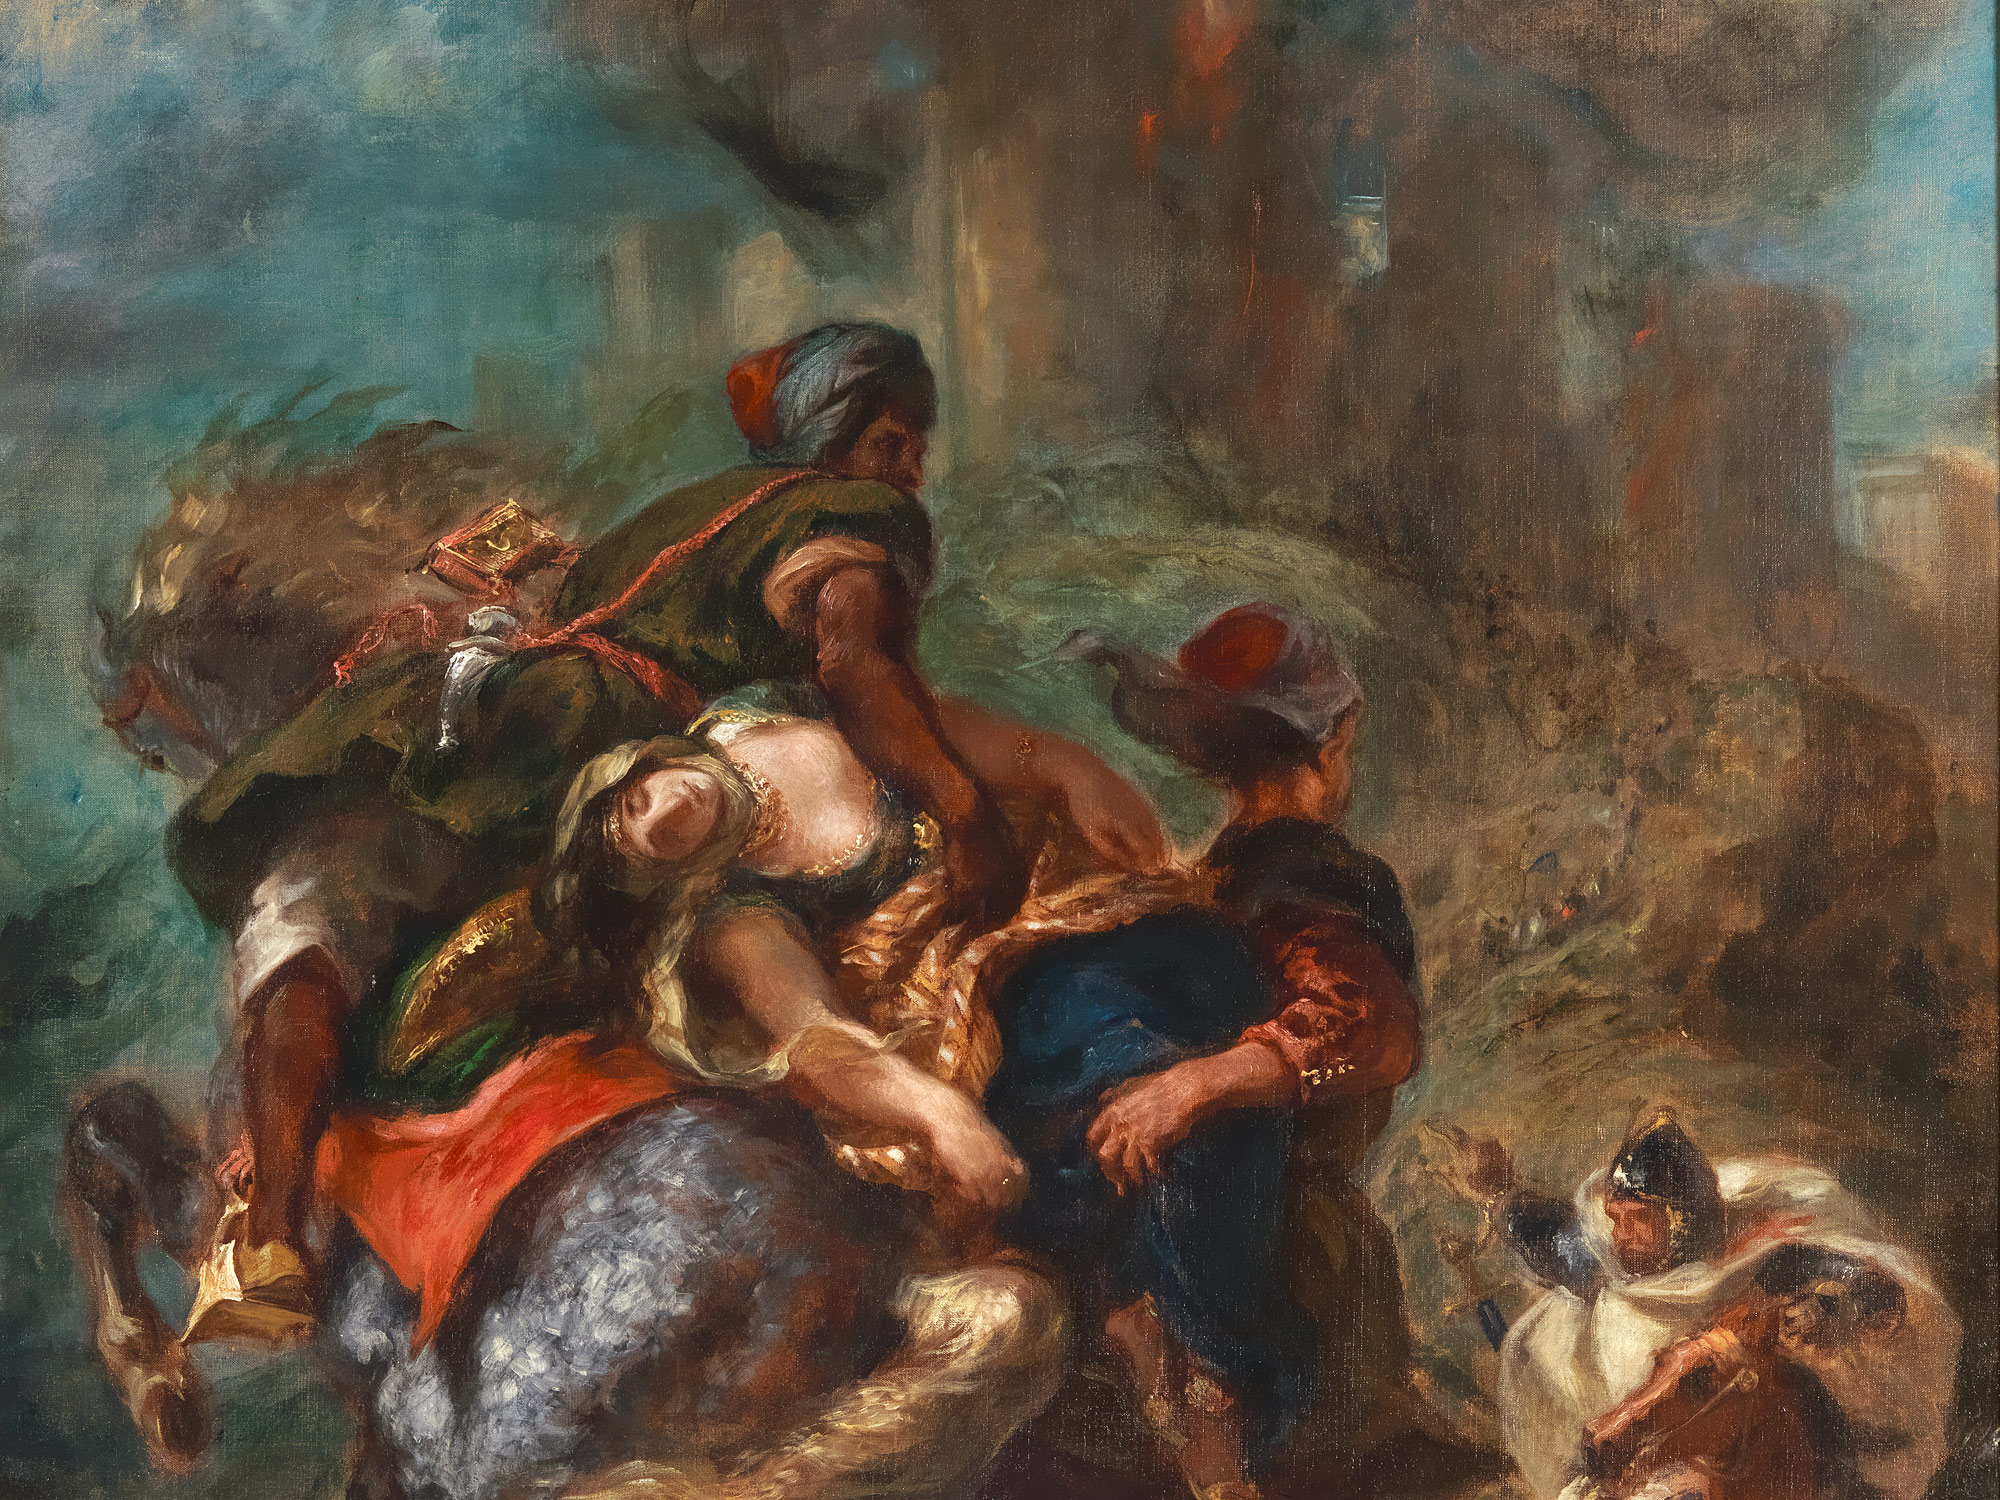 The Abduction of Rebecca